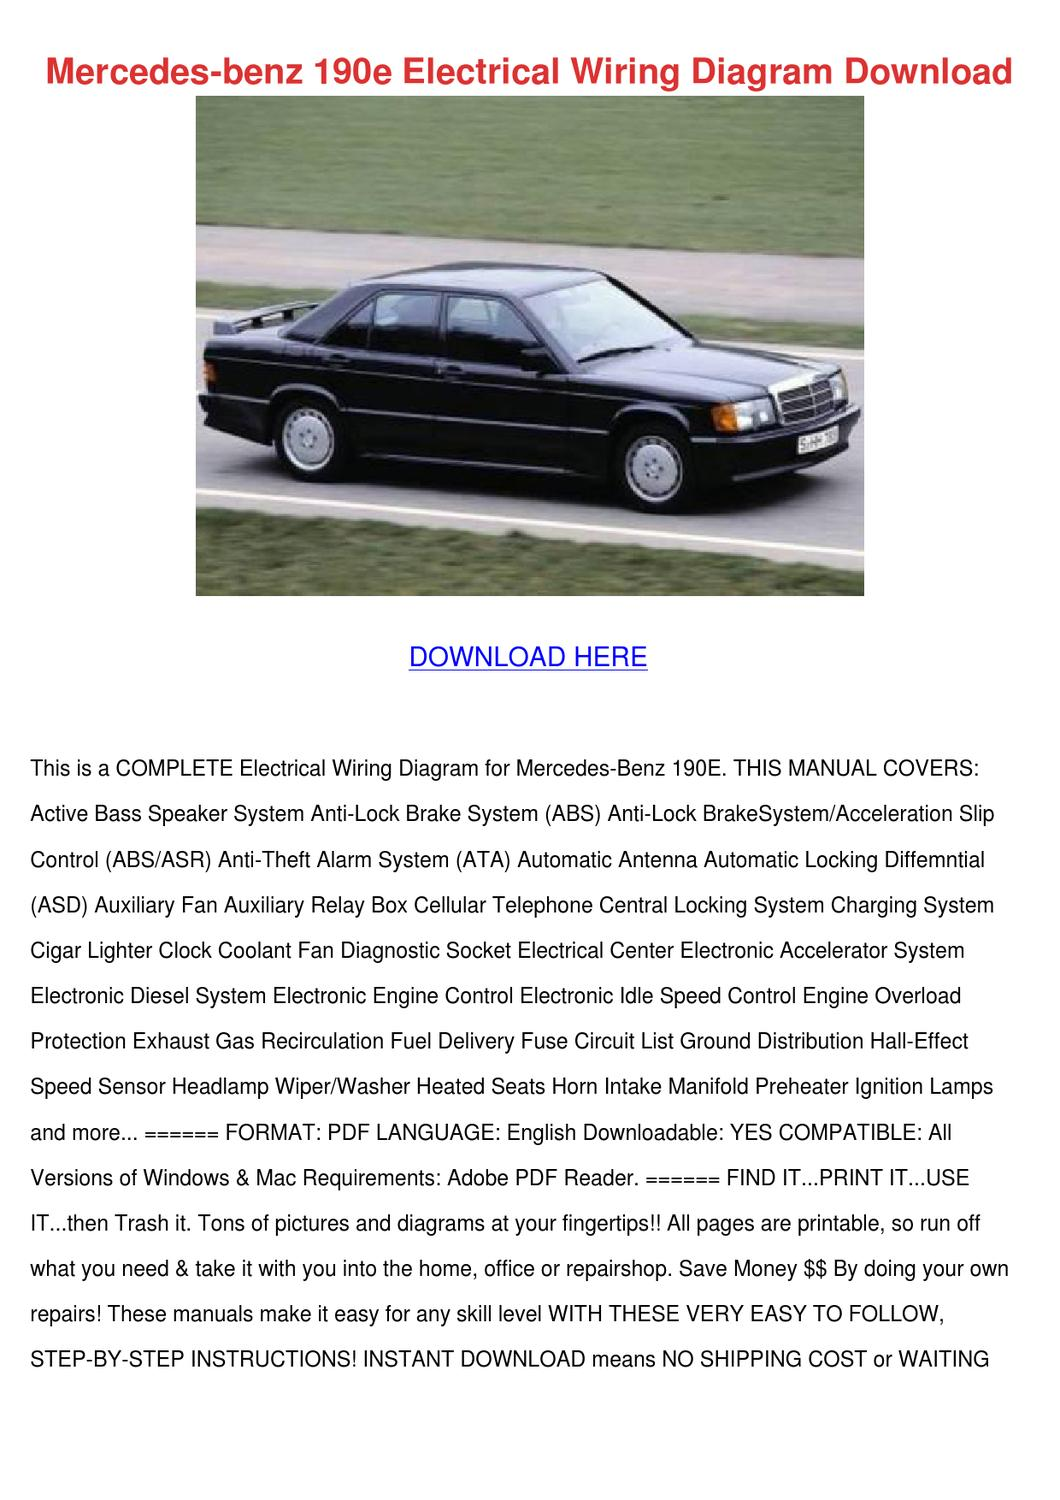 Mercedes Benz 190e Electrical Wiring Diagram By Arleneadam